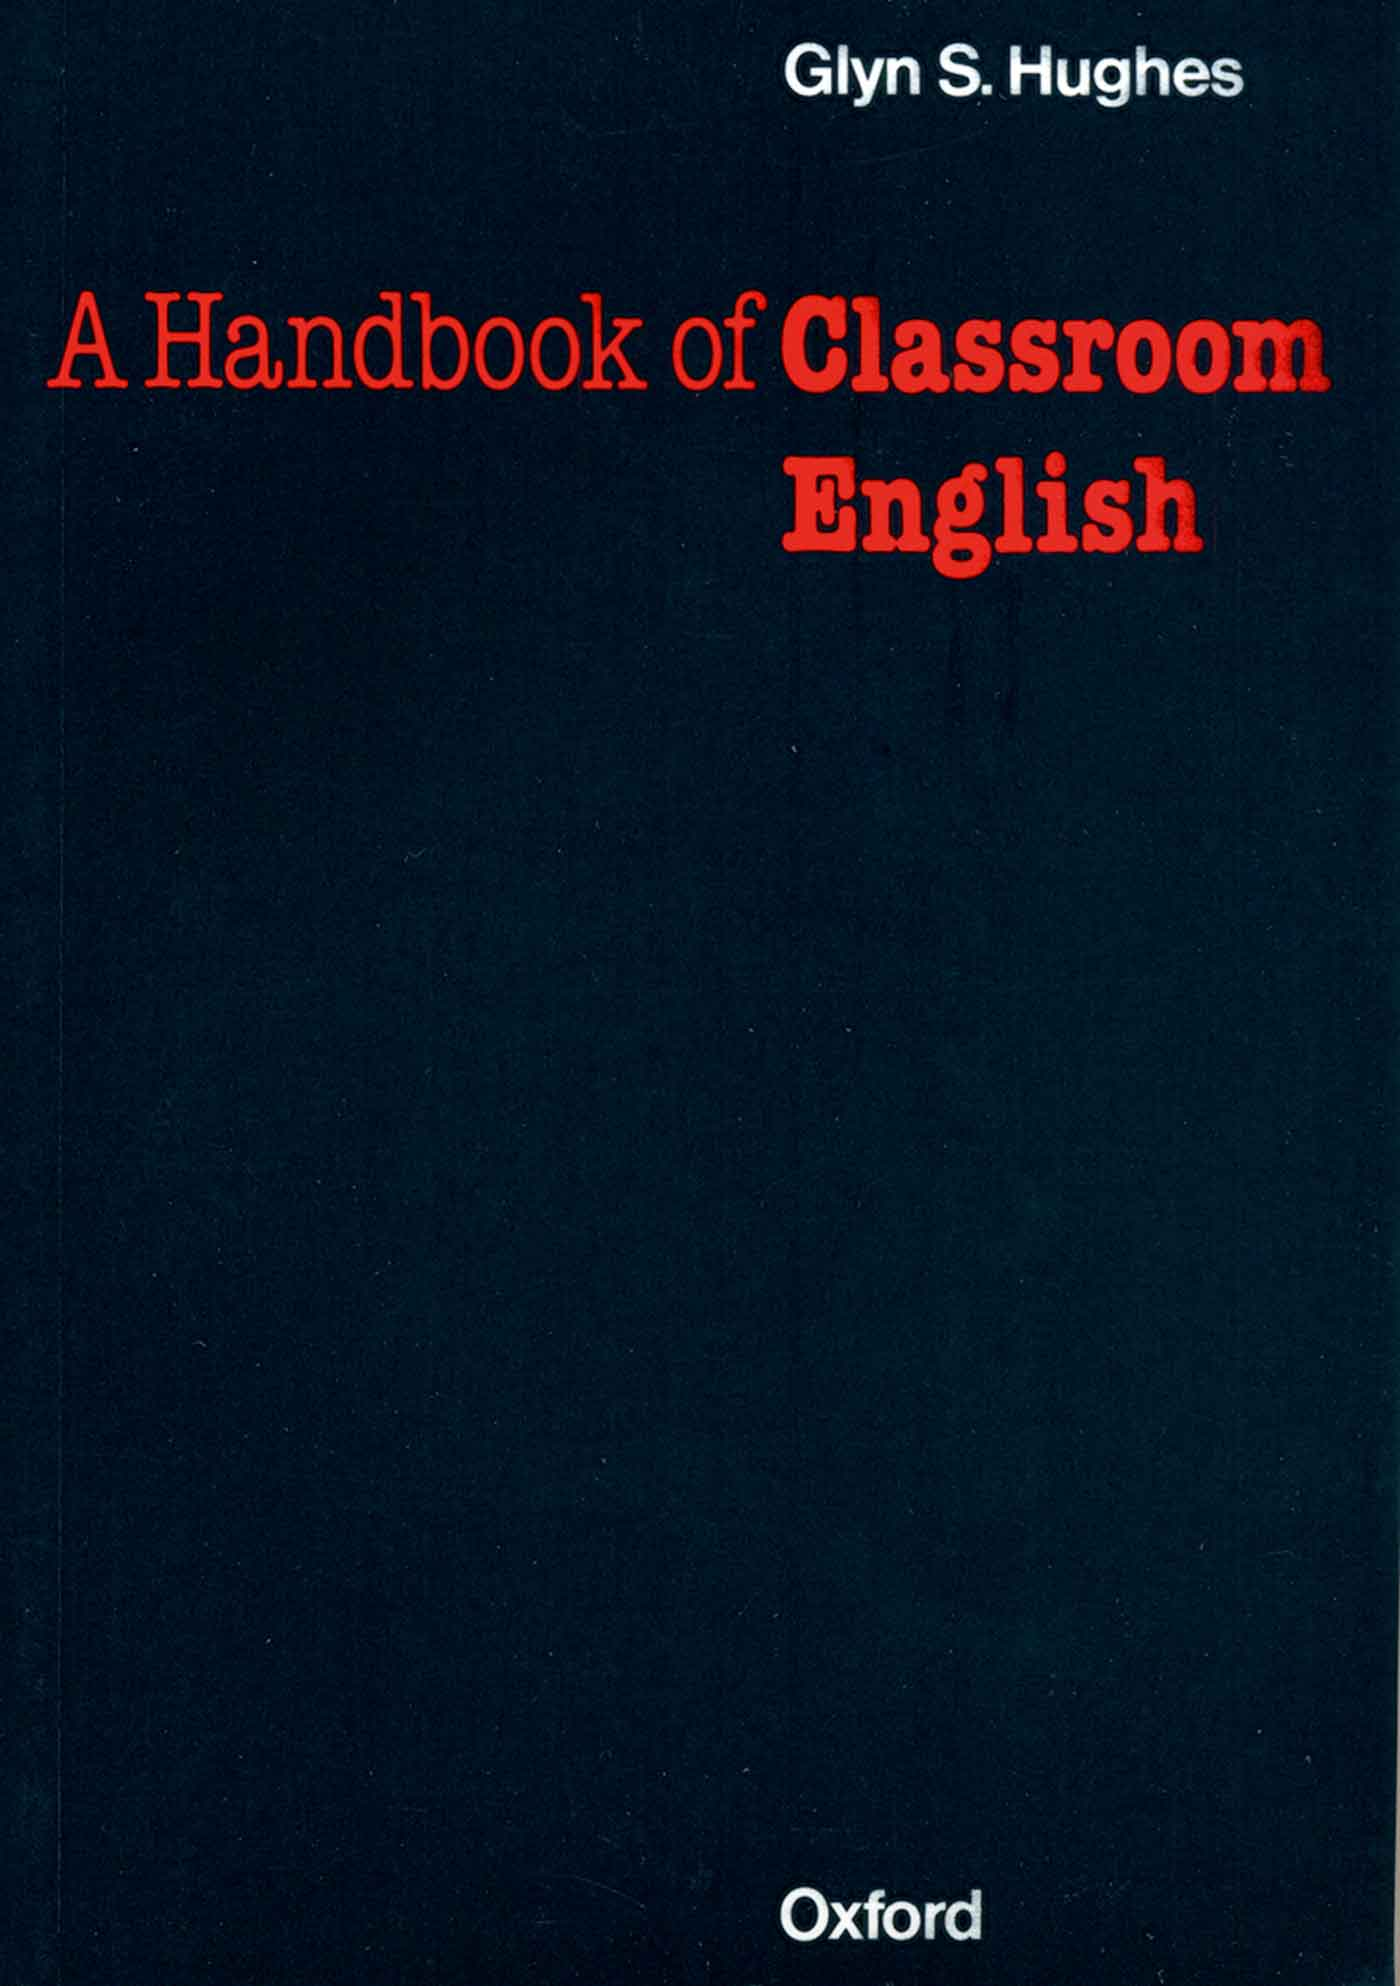 цены Glynn S. Hughes Handbook of Classroom English